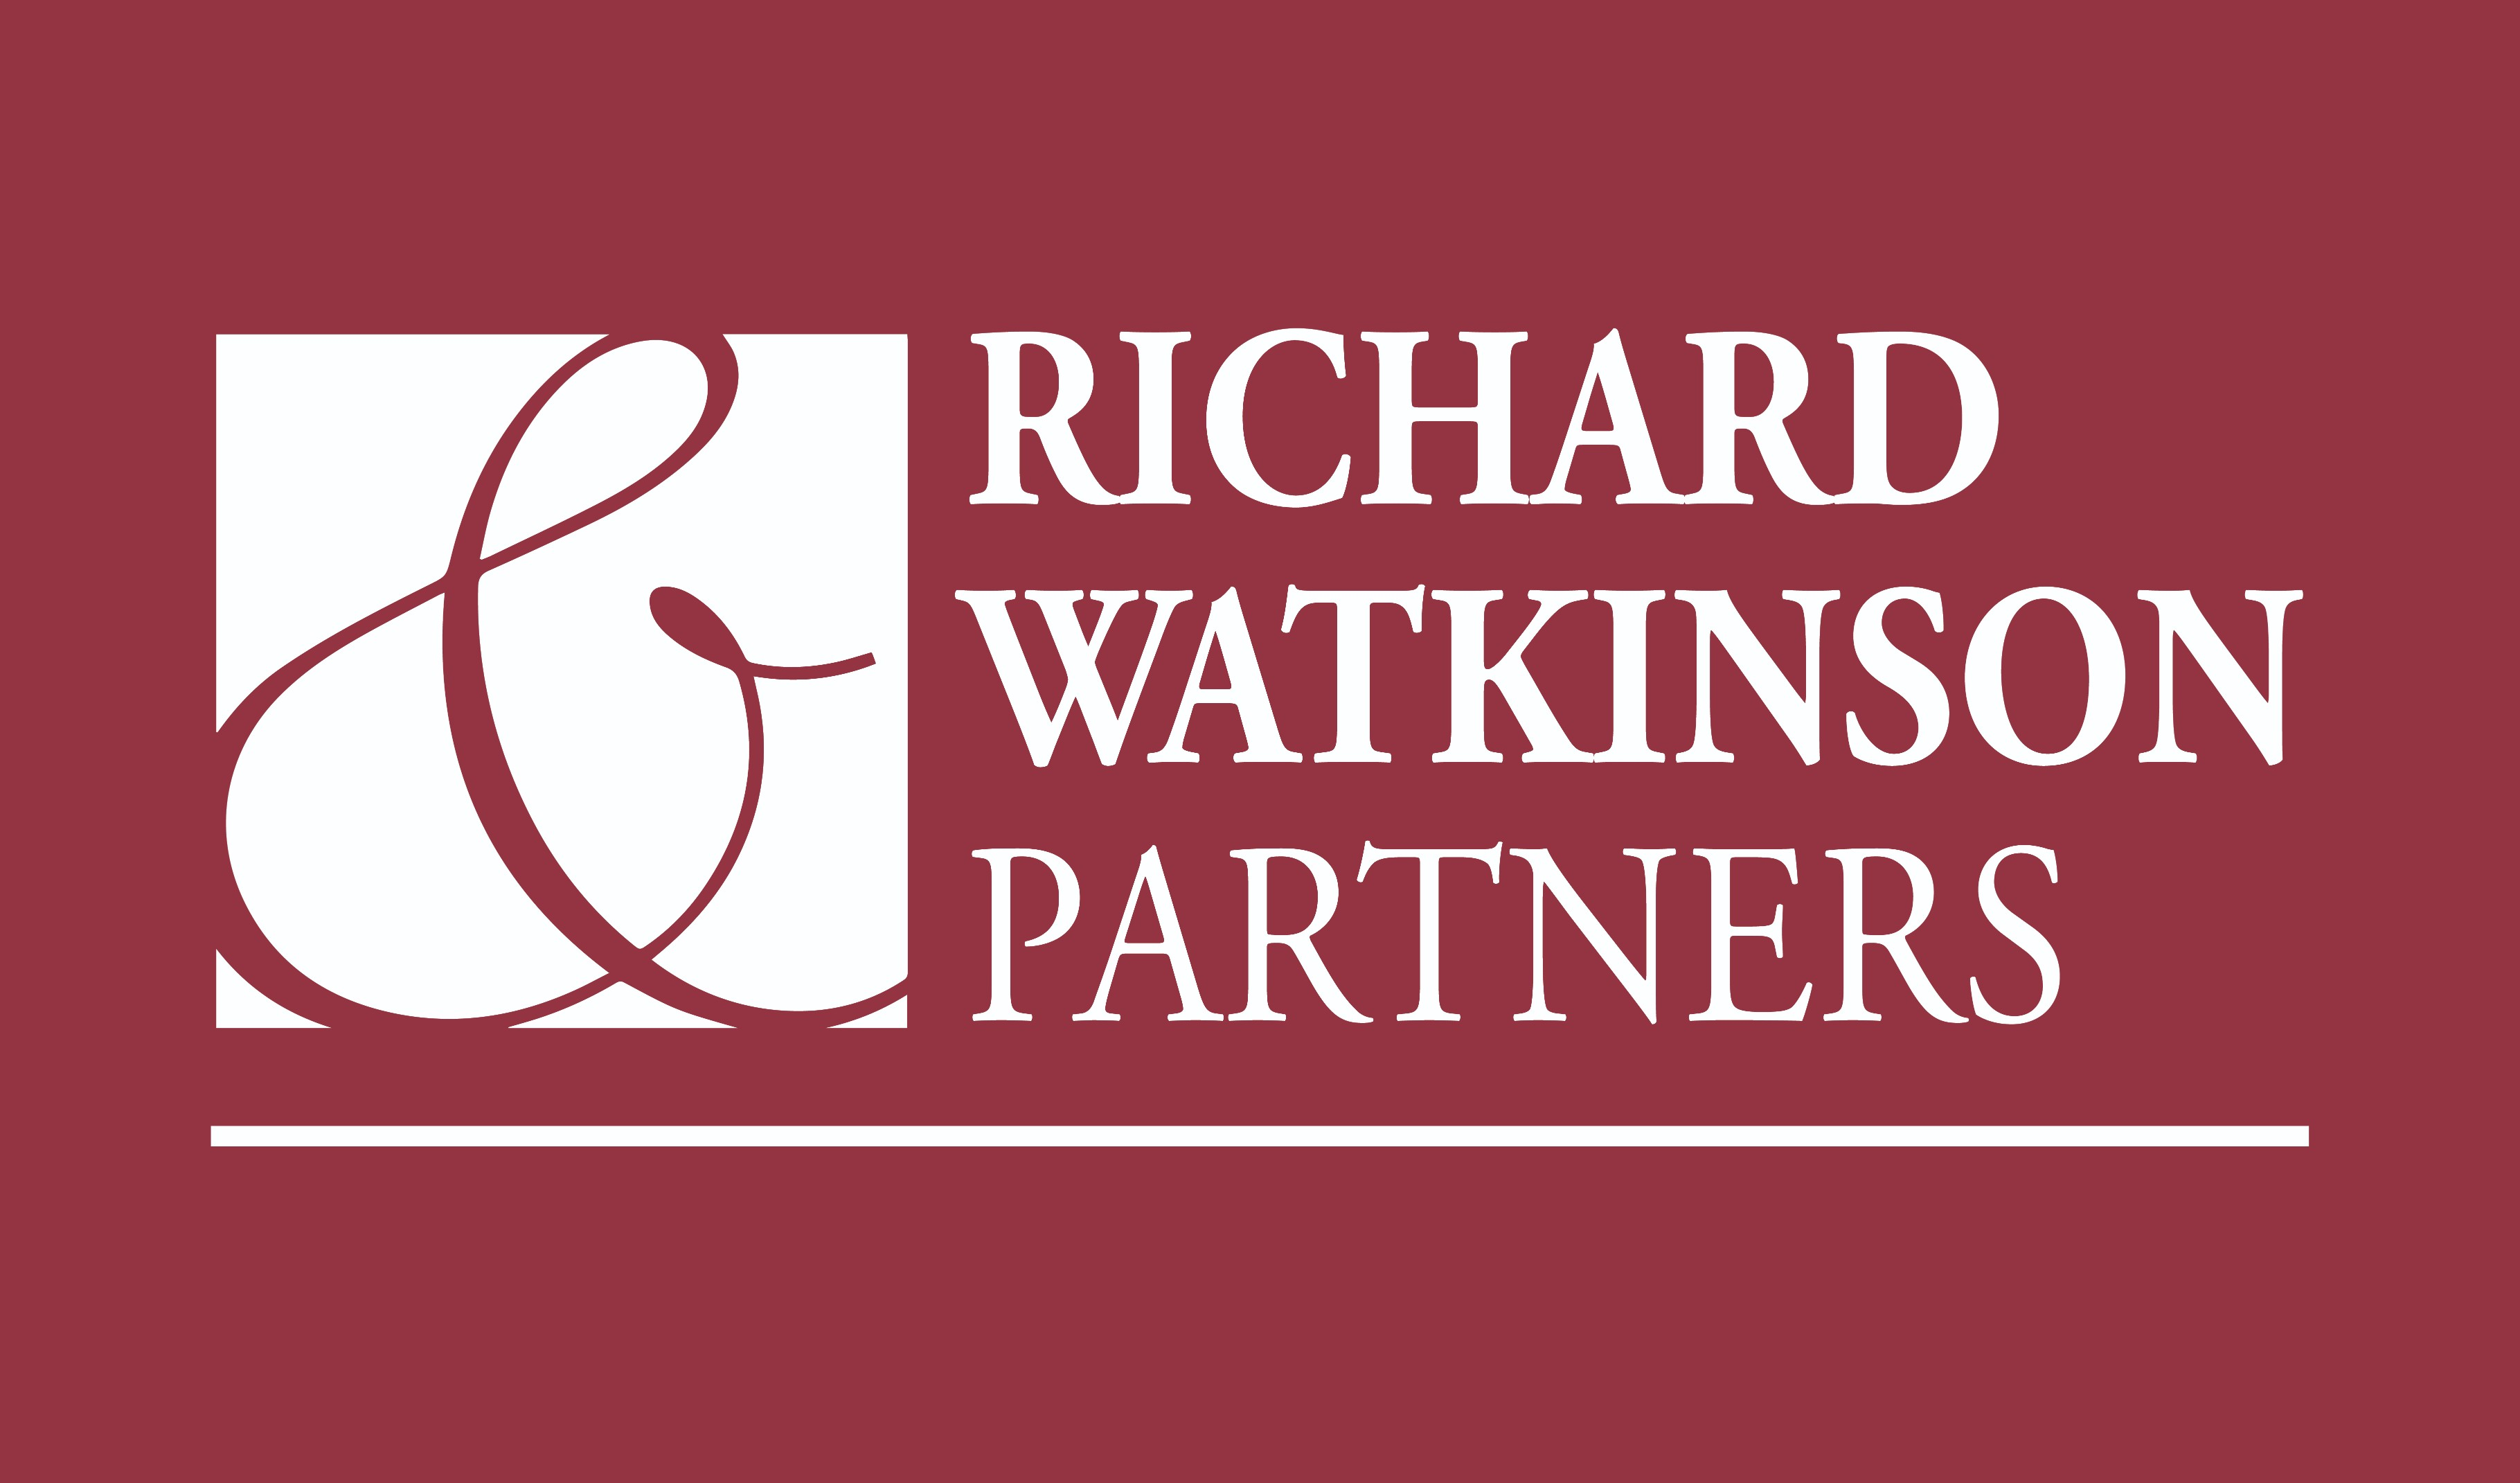 Richard Watkinson & Partners